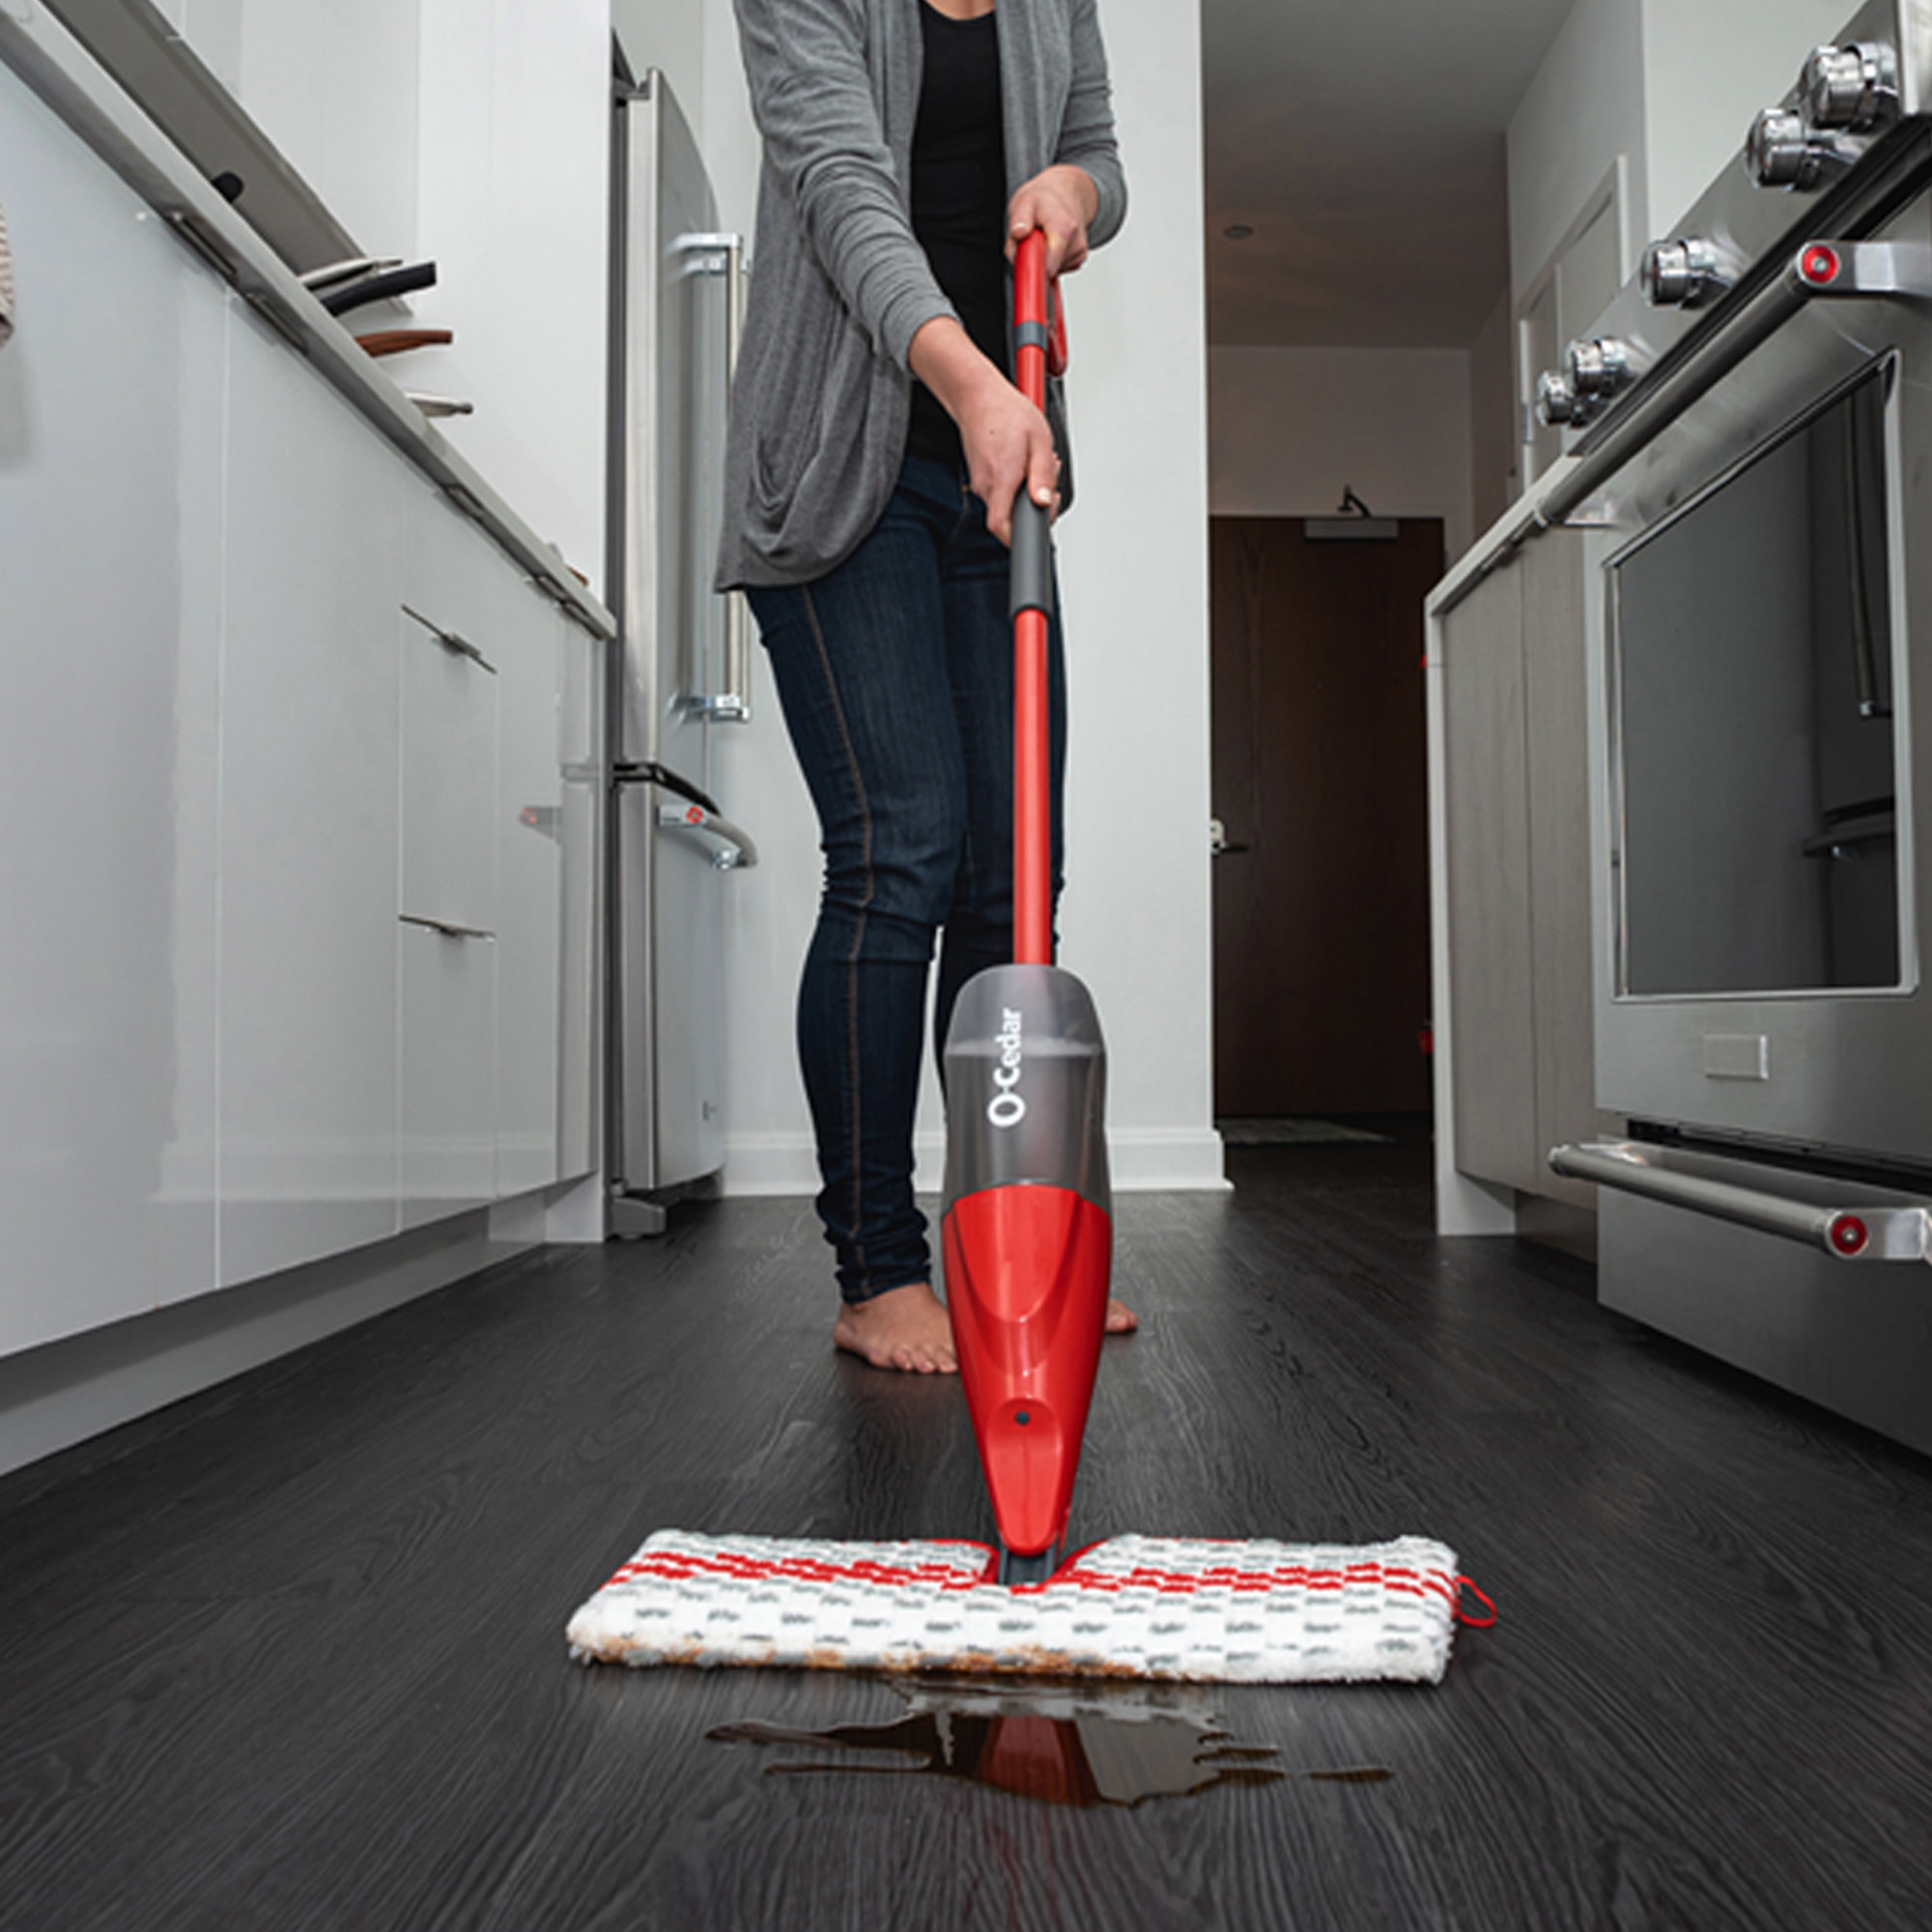 Product photo showing model using the O-Cedar ProMist Microfiber Spray Mop to clean up a spilled liquid